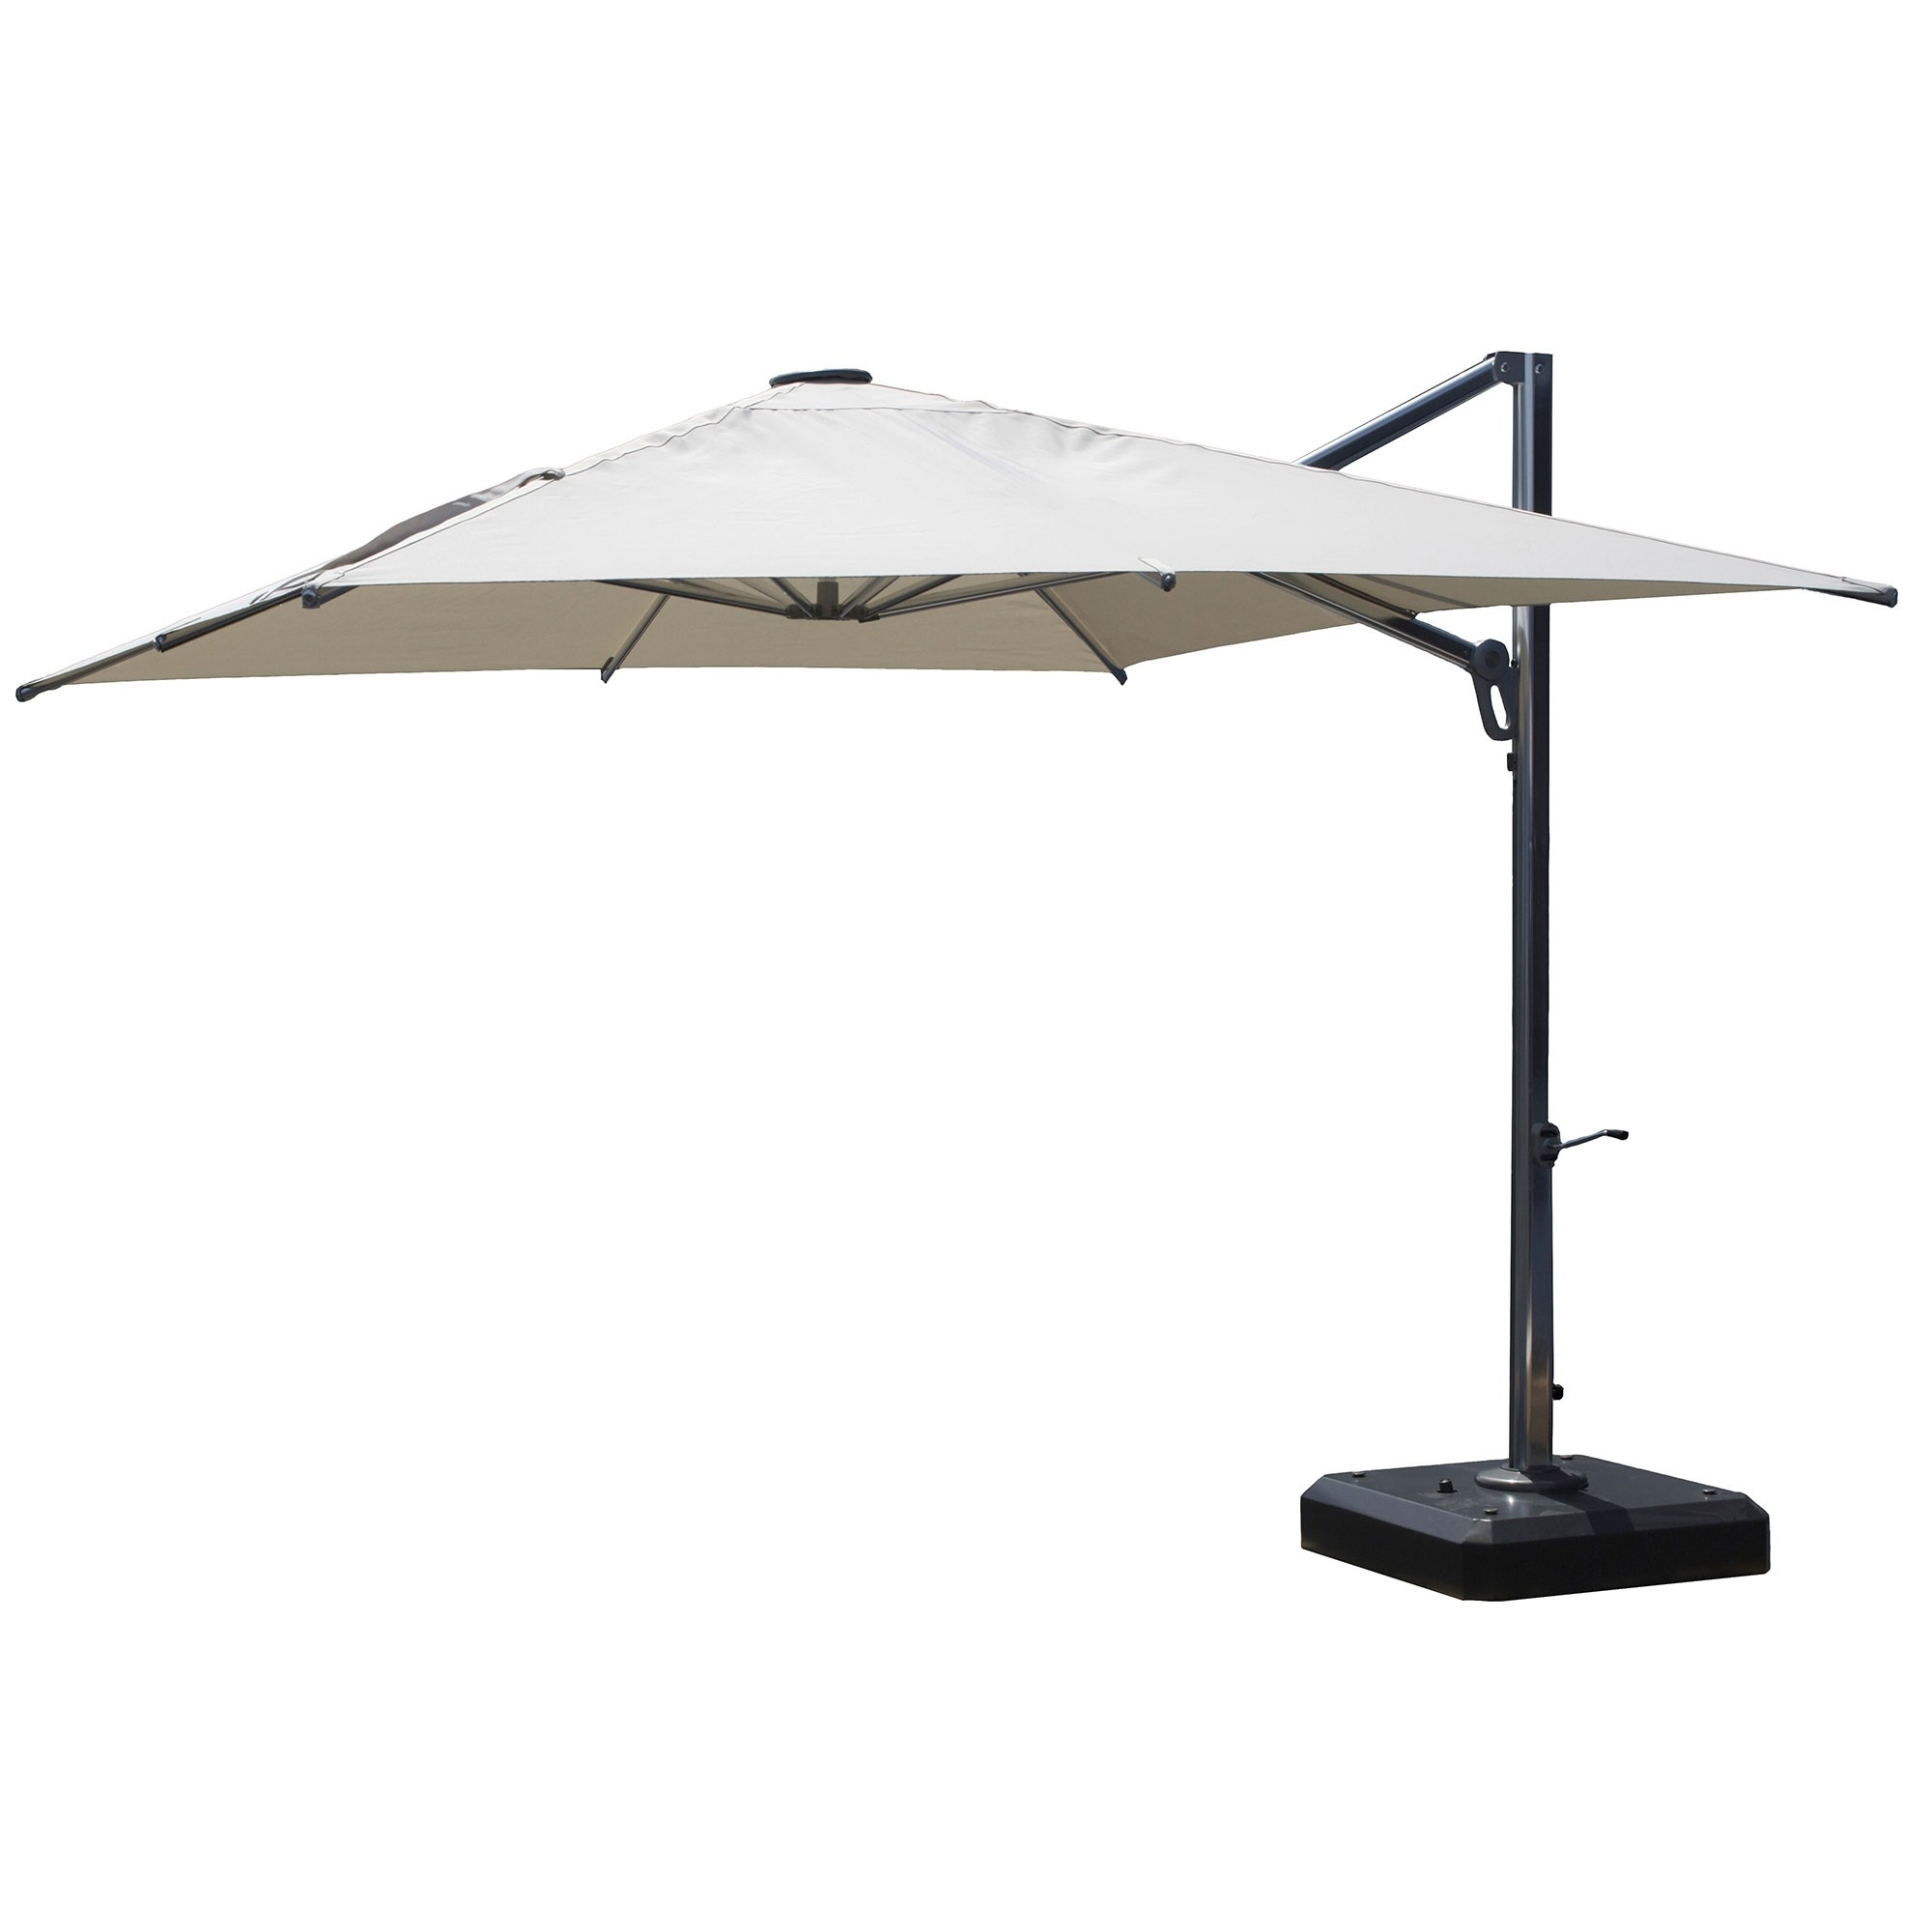 Commercial Patio Umbrellas Sunbrella For Well Liked Nassau Commercial Umbrella – Sunbrella (View 1 of 20)